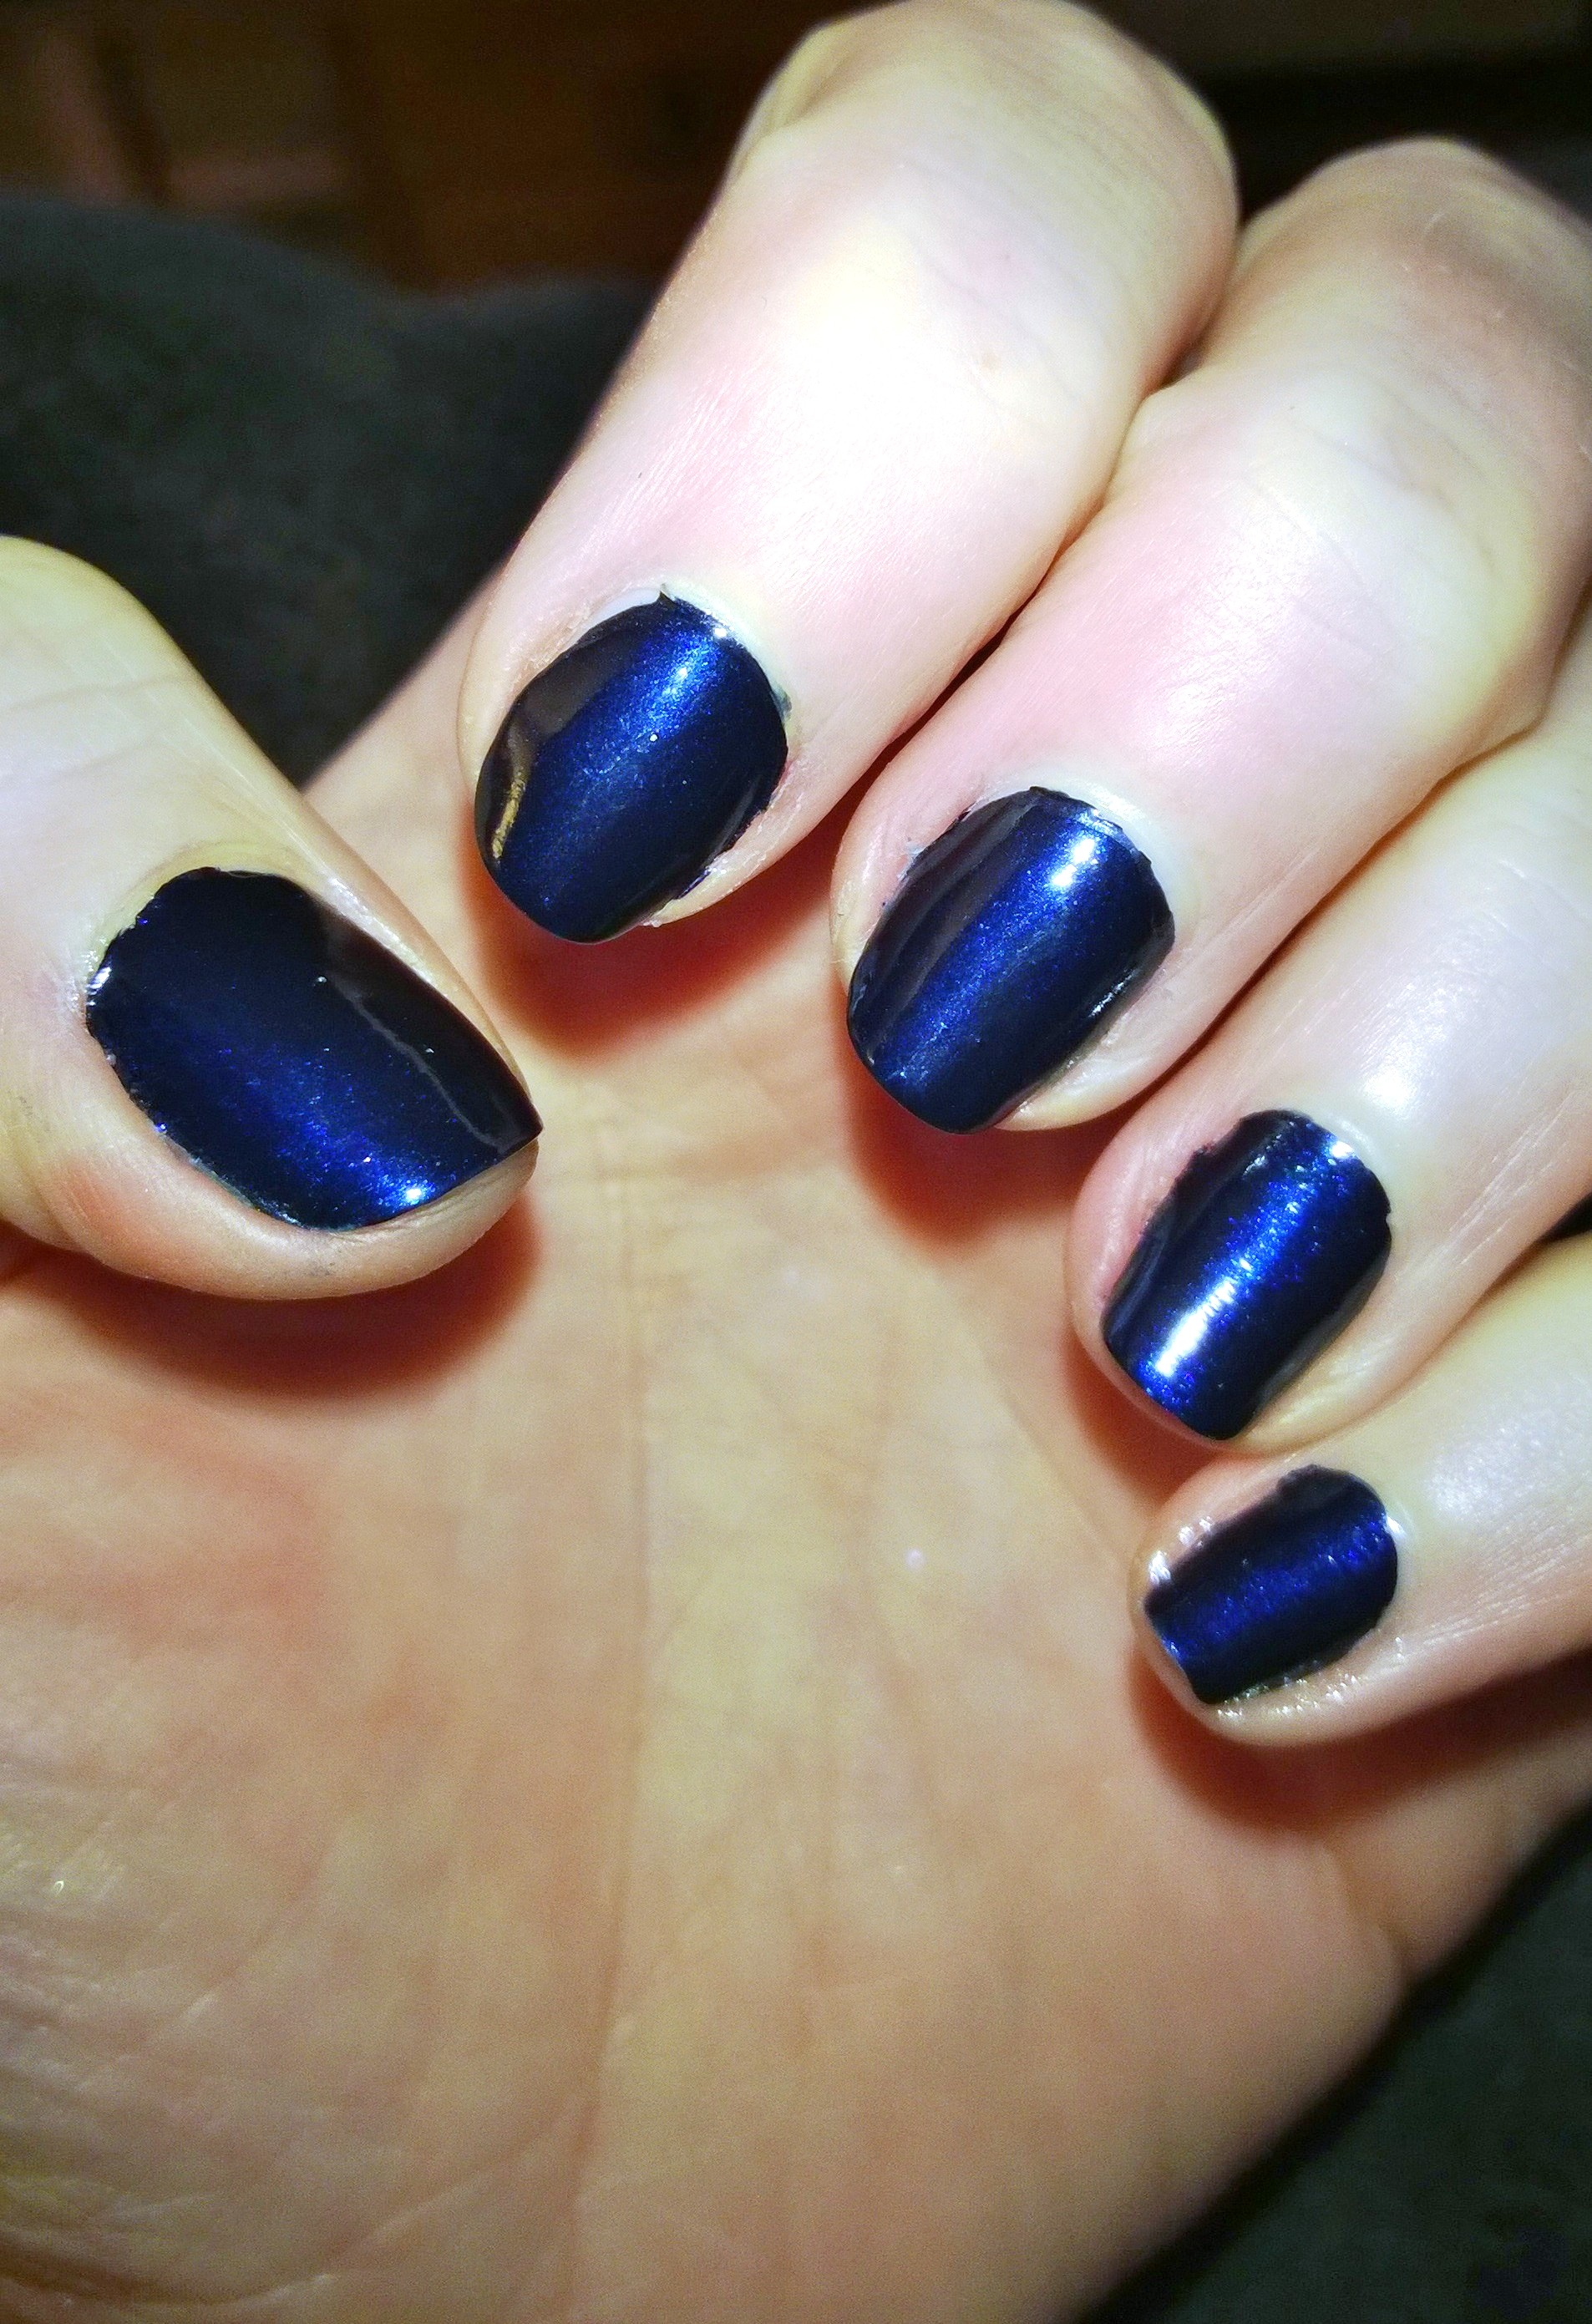 metallic blue gel nail polish